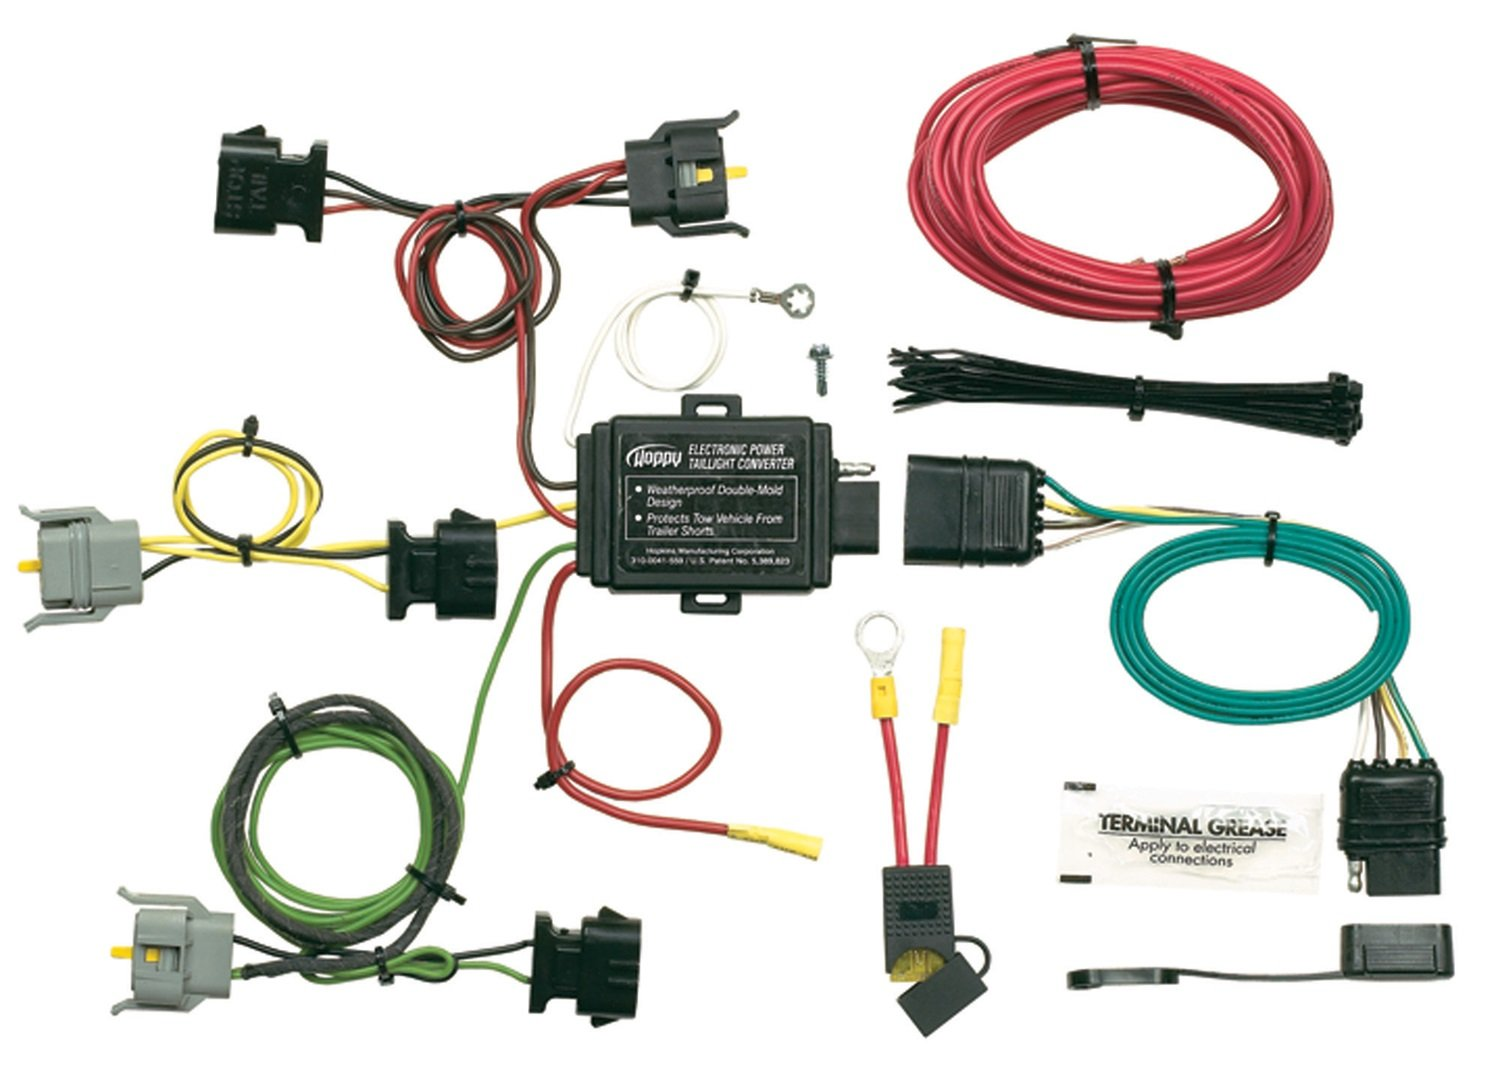 71P3UEzZLAL._SL1500_ amazon com hopkins 40315 plug in simple vehicle wiring kit hopkins 47185 wiring diagram at pacquiaovsvargaslive.co